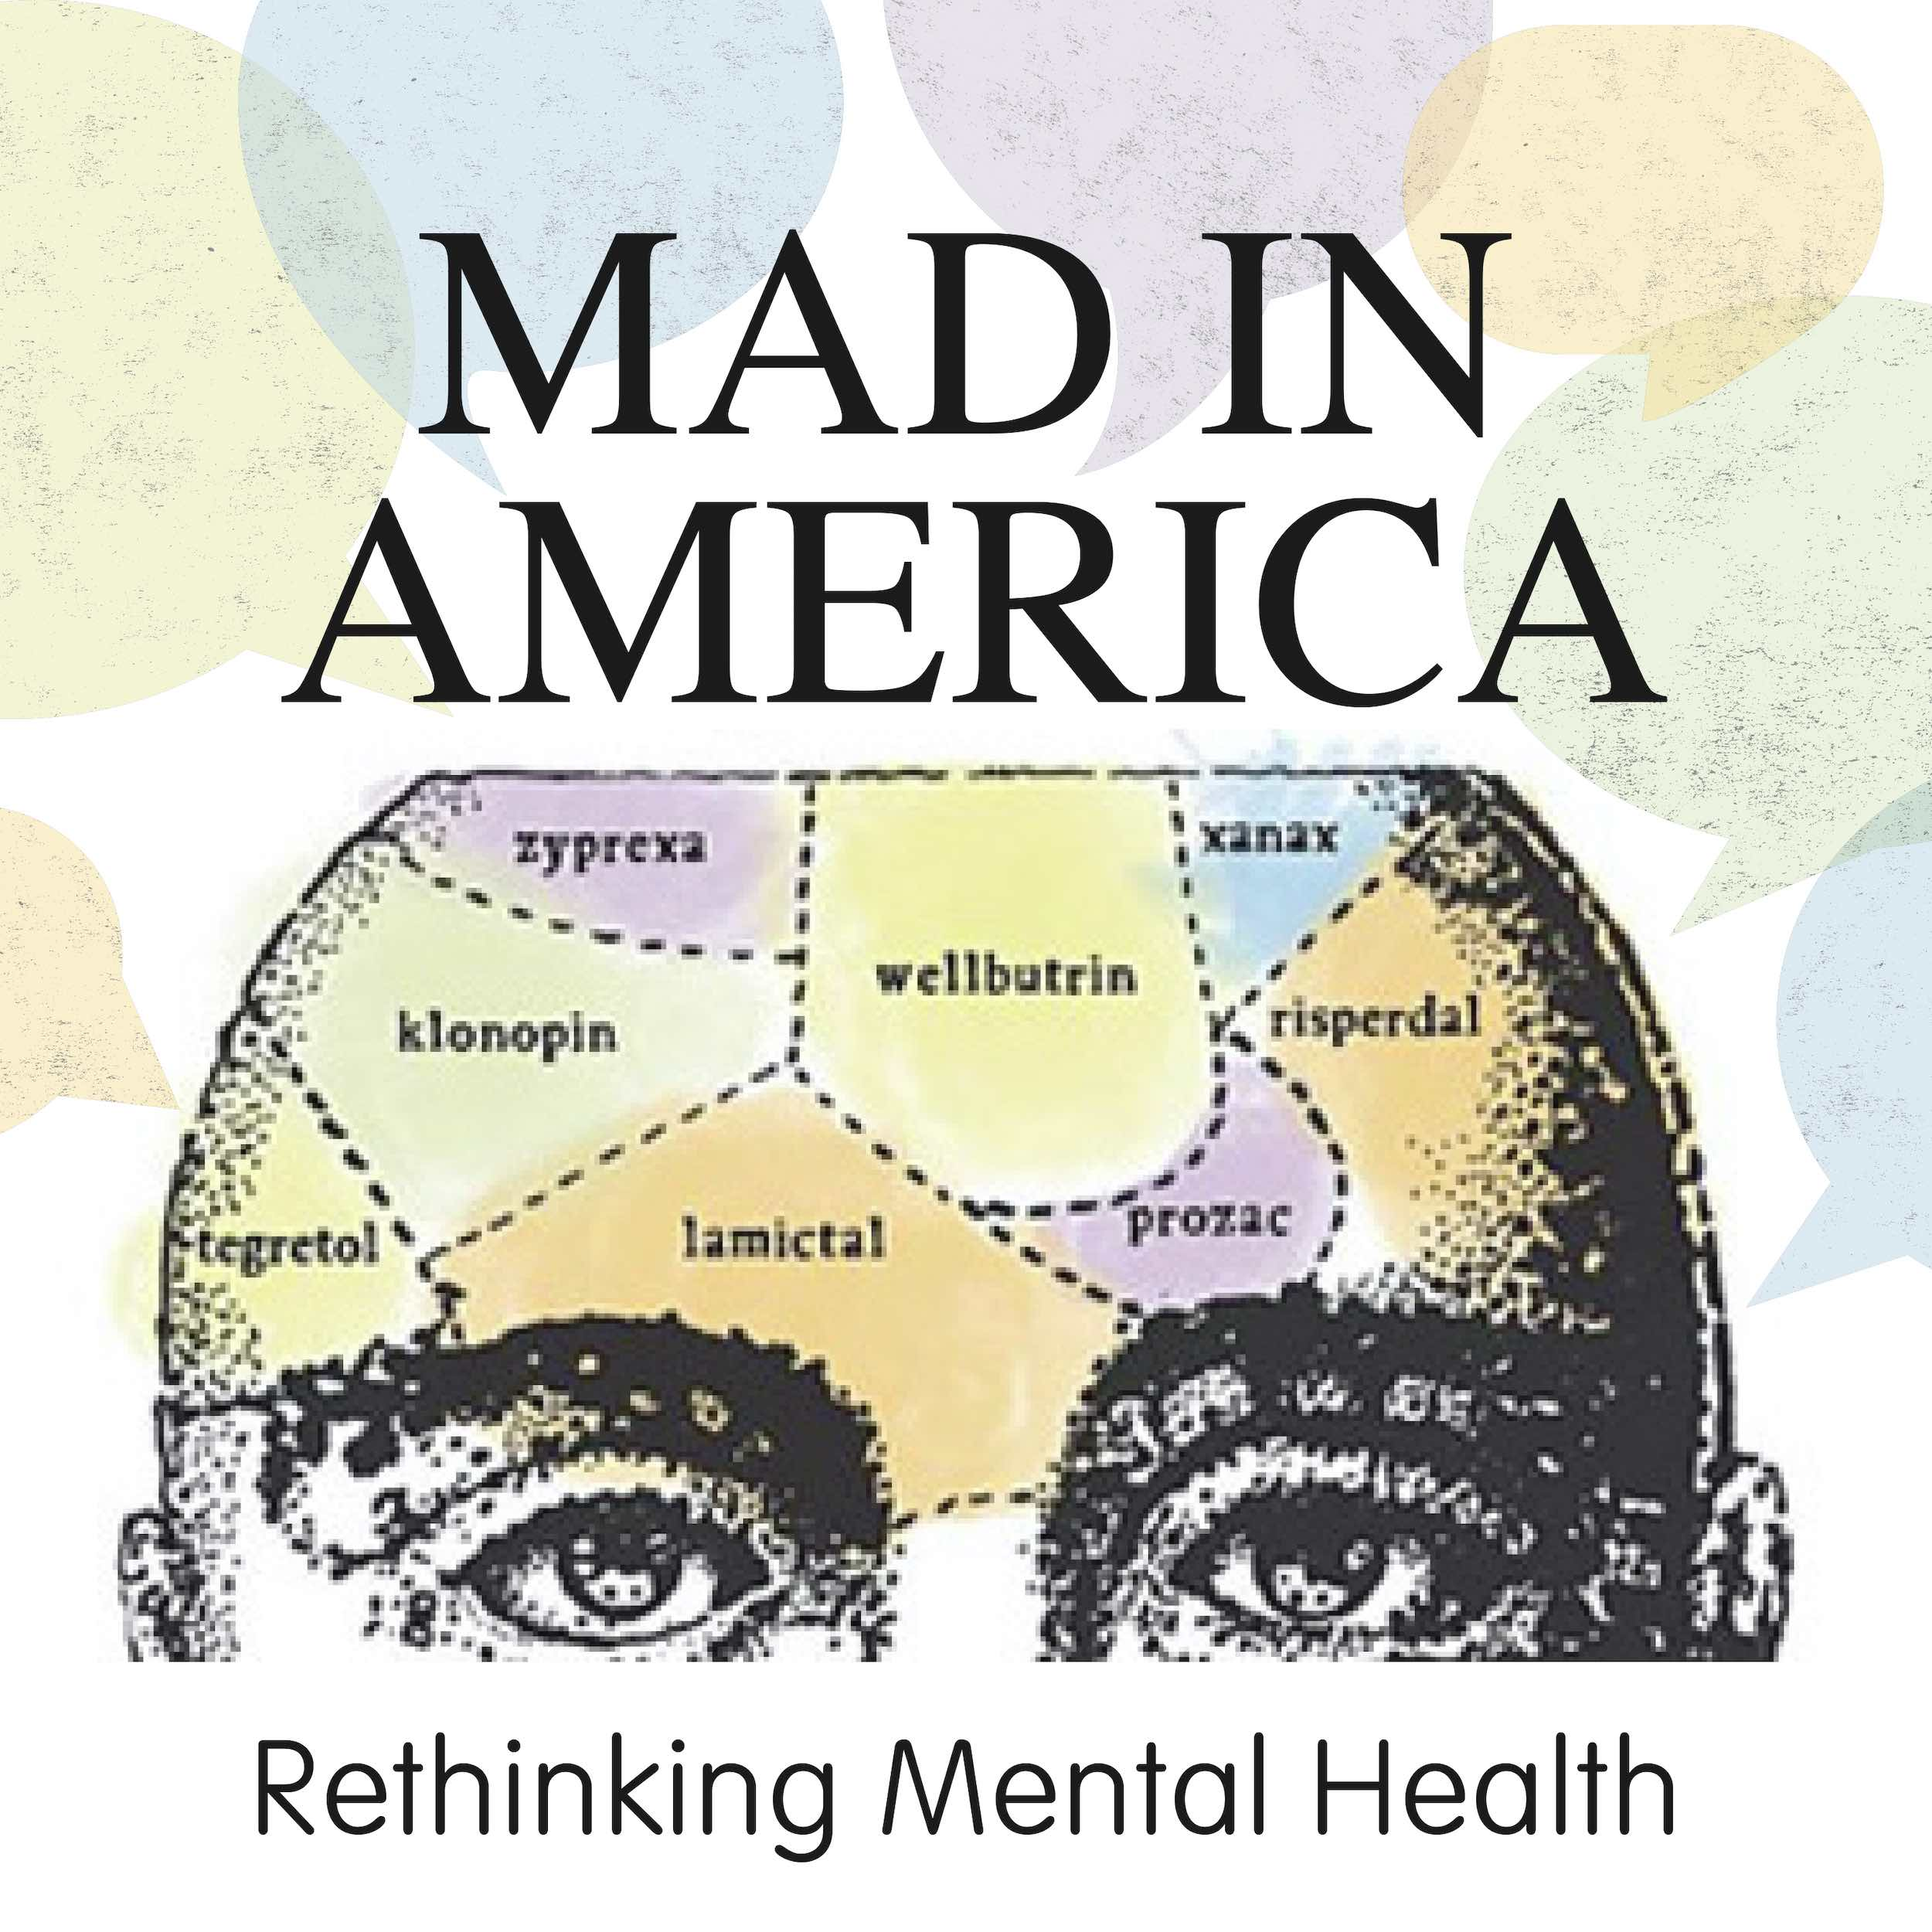 Mad in America: Rethinking Mental Health - Peter Mayfield - Healing Youth with Nature and Connection